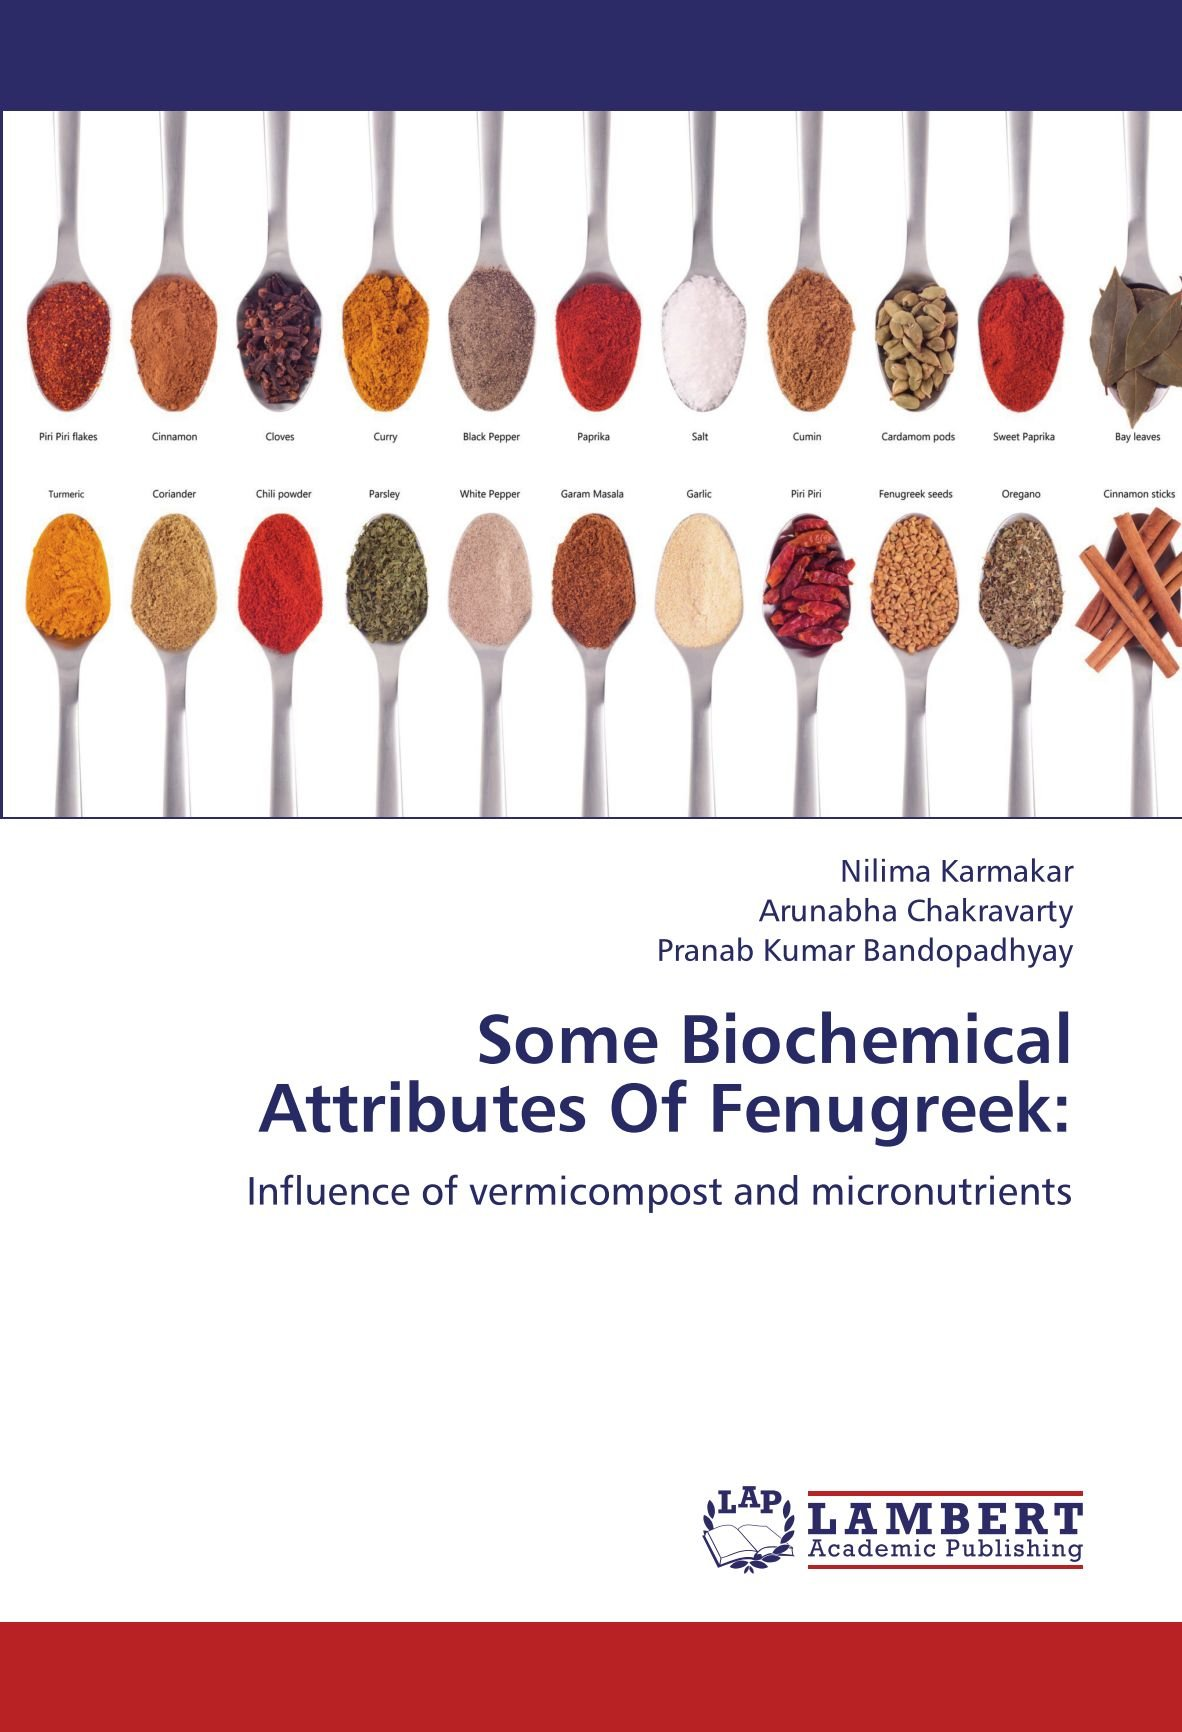 Some Biochemical Attributes Of Fenugreek:: Influence of vermicompost and micronutrients PDF